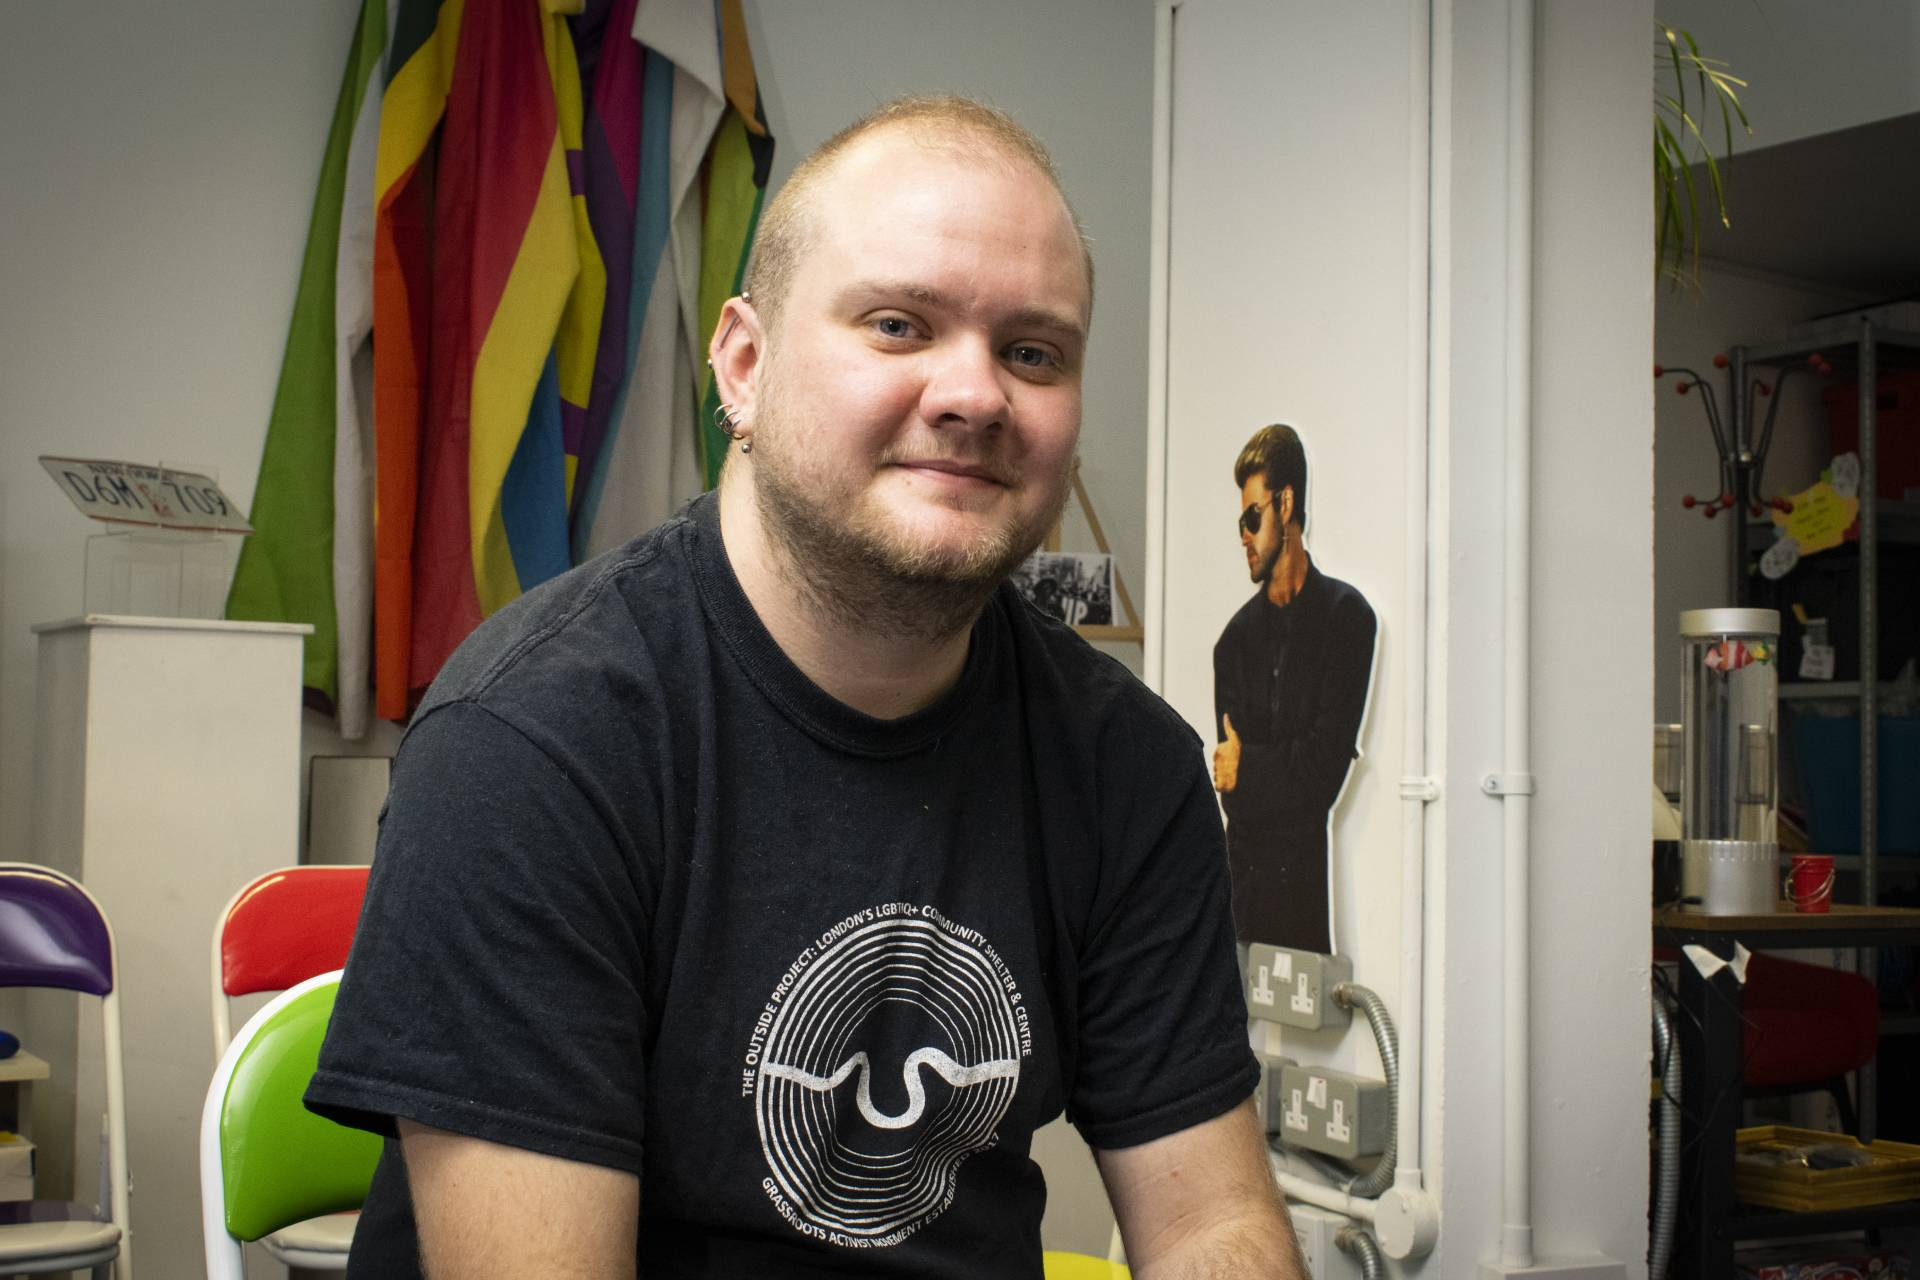 A white man with close cropped blonde hair and ear piercings, wearing a black T-shirt smiles for the camera